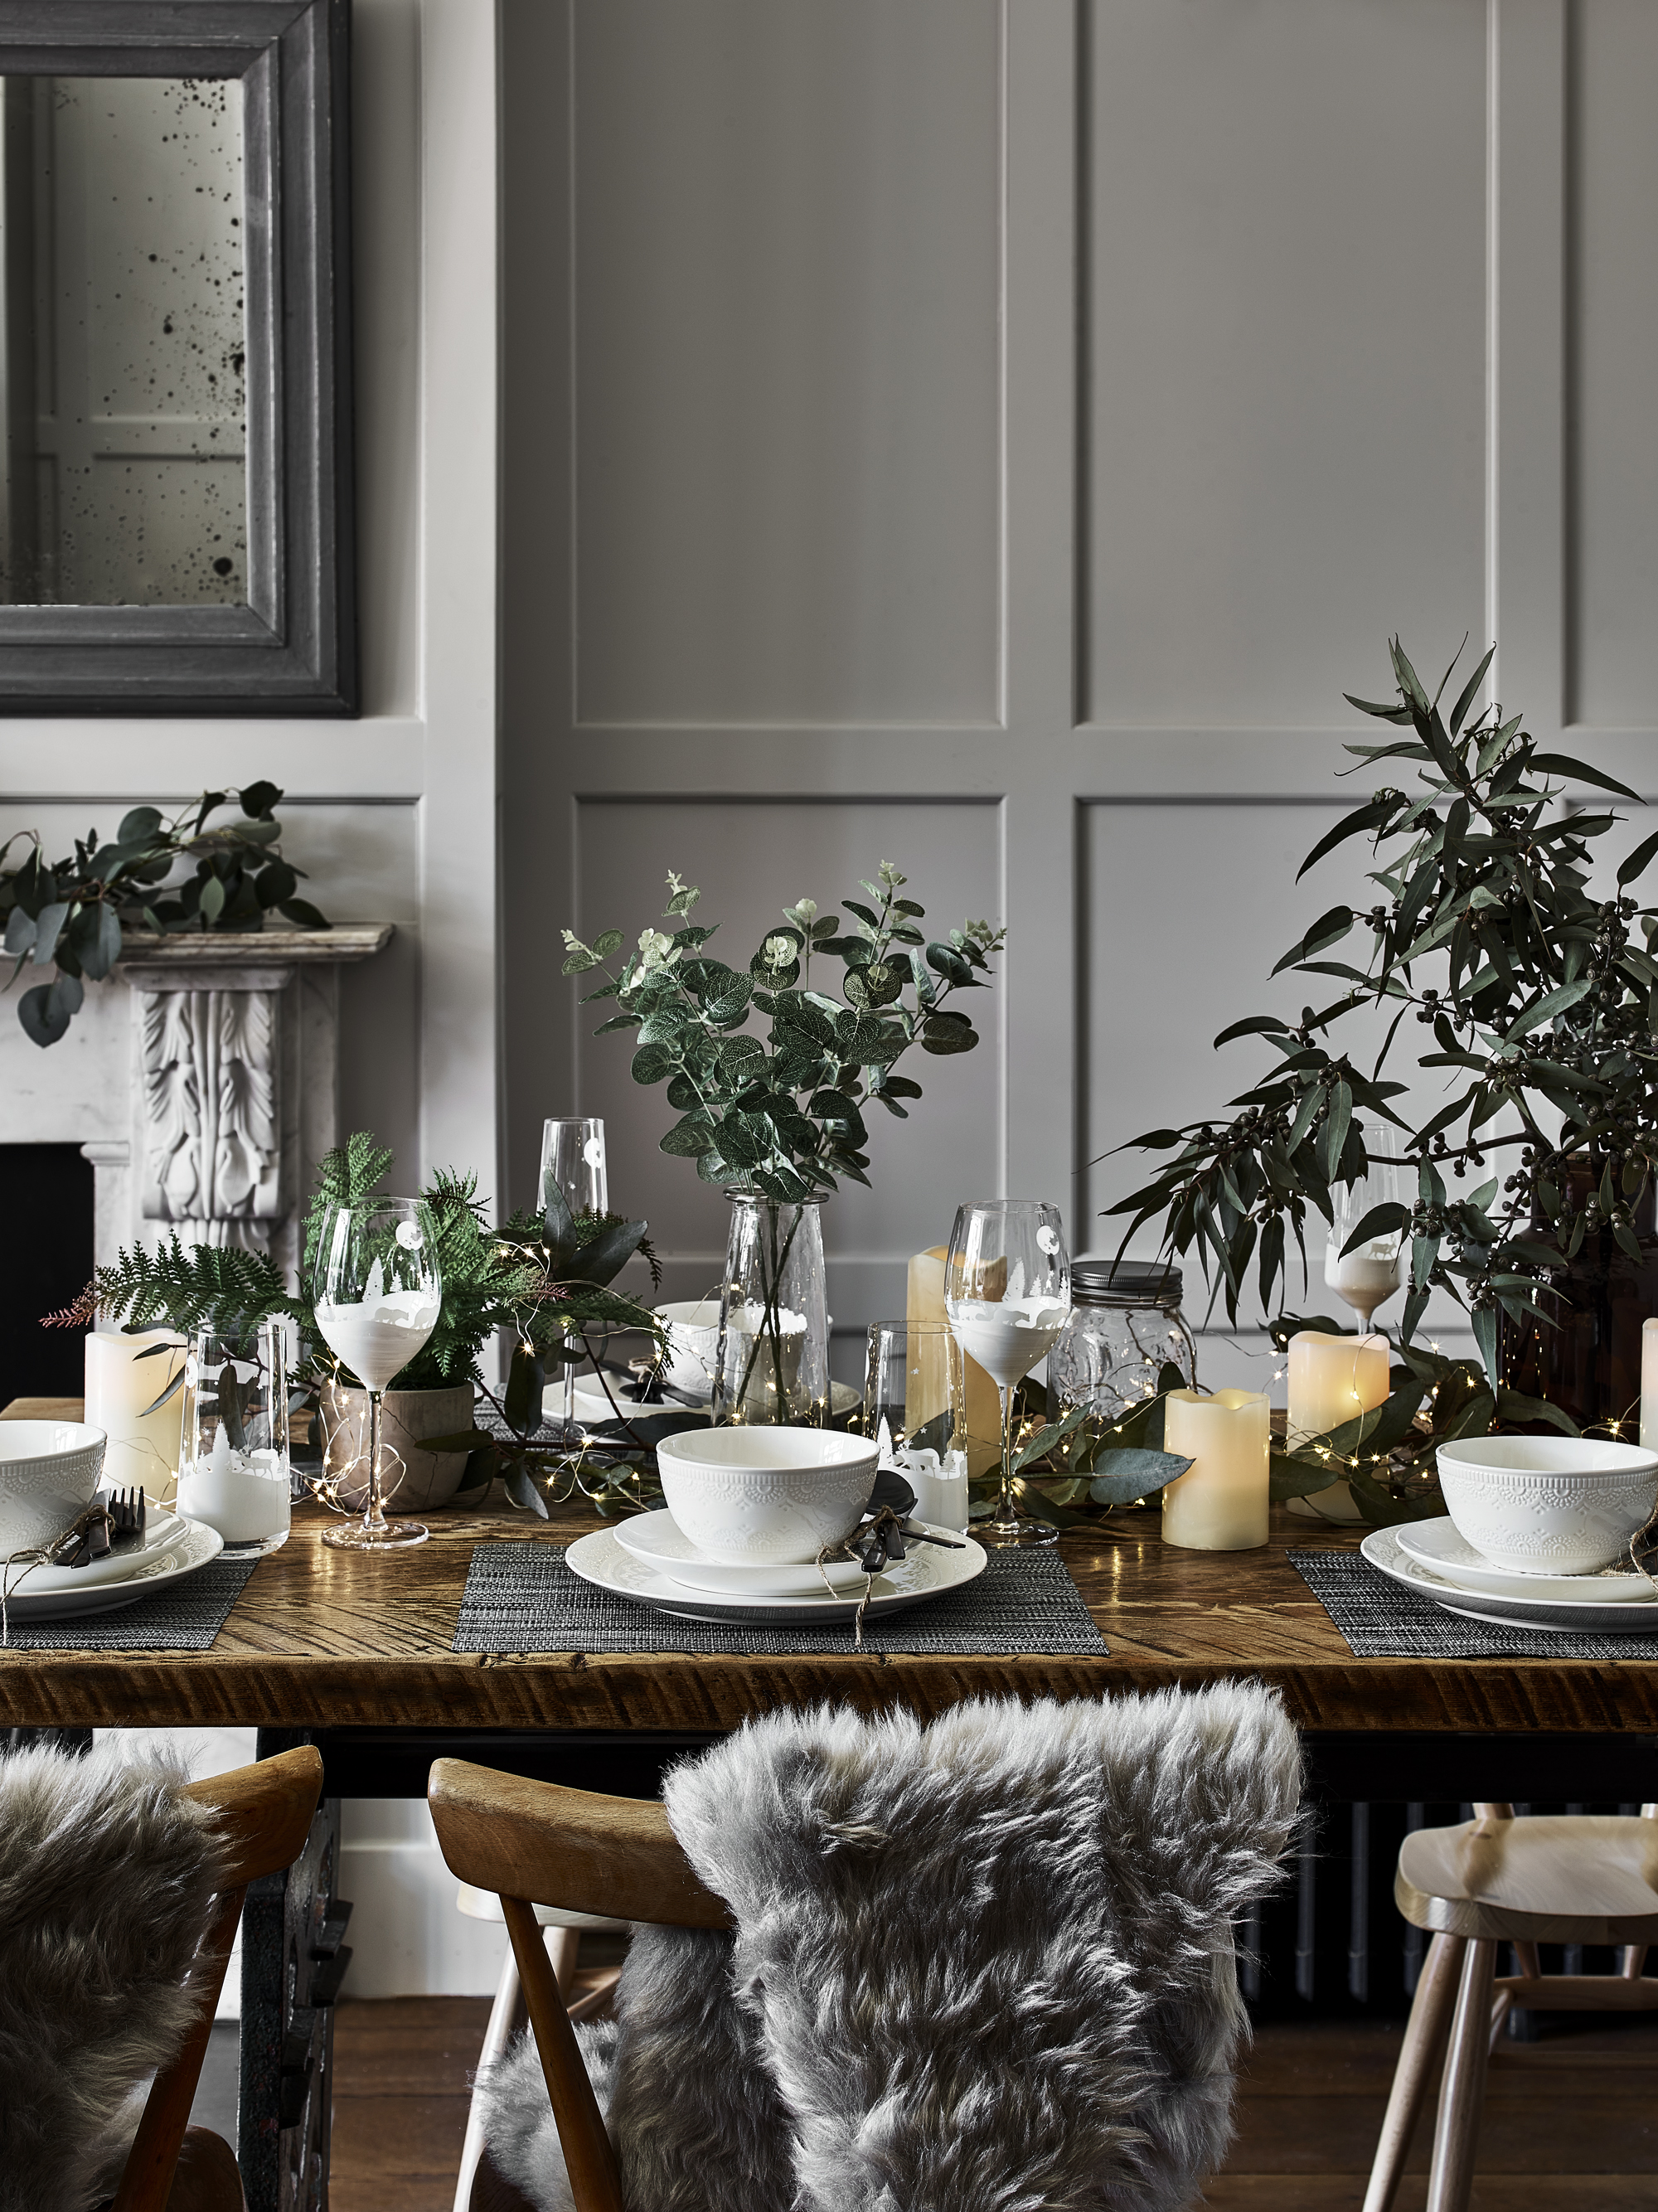 Nordic Wonderland - A minimalist twist on the traditional, the Nordic trend is full of cream ornaments, natural textures and forest-green accessories. To achieve the look, fill your home with wooden carved stag heads, cream ceramics and faux fur throws. We'll be shopping the Nordic range from Asda to achieve this Scandinavian-inspired elegance on a budget. Image: George Home